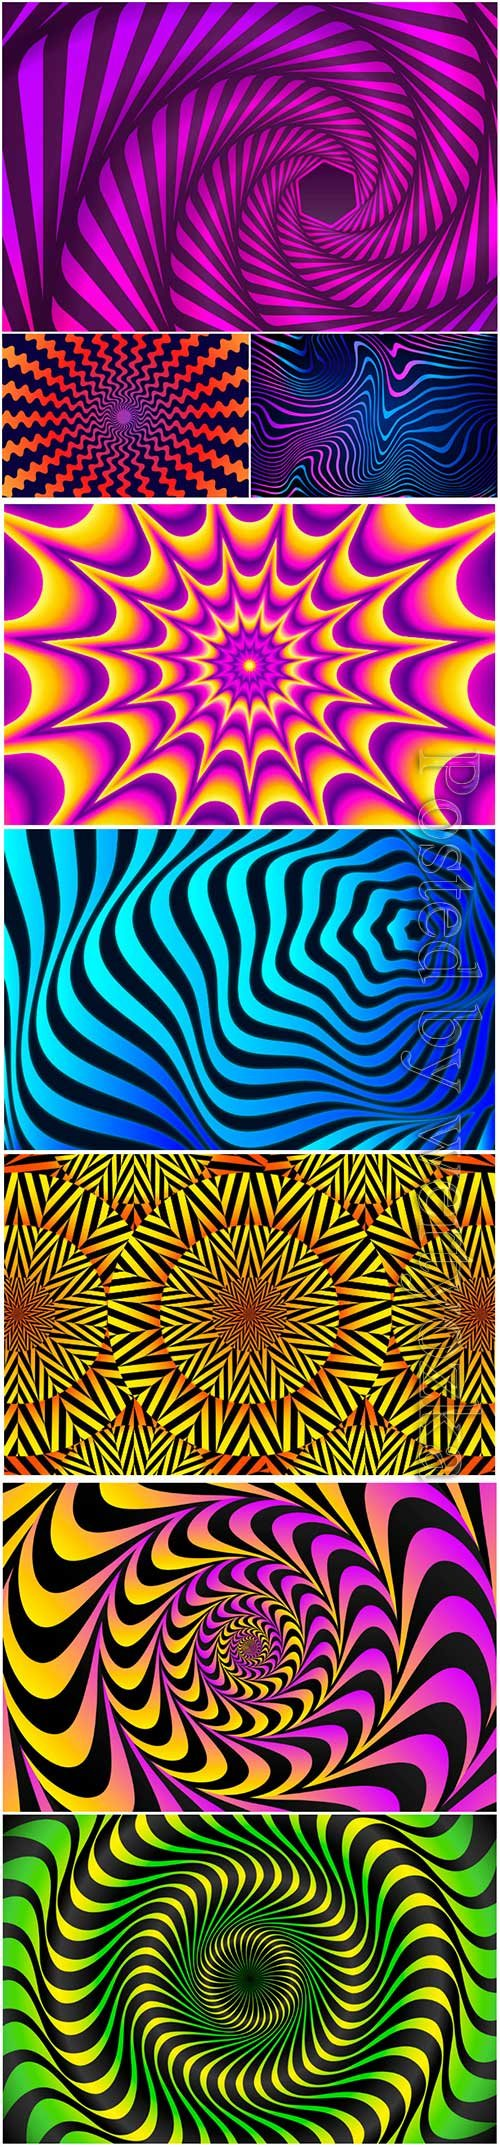 Psychedelic optical illusion vector background # 4